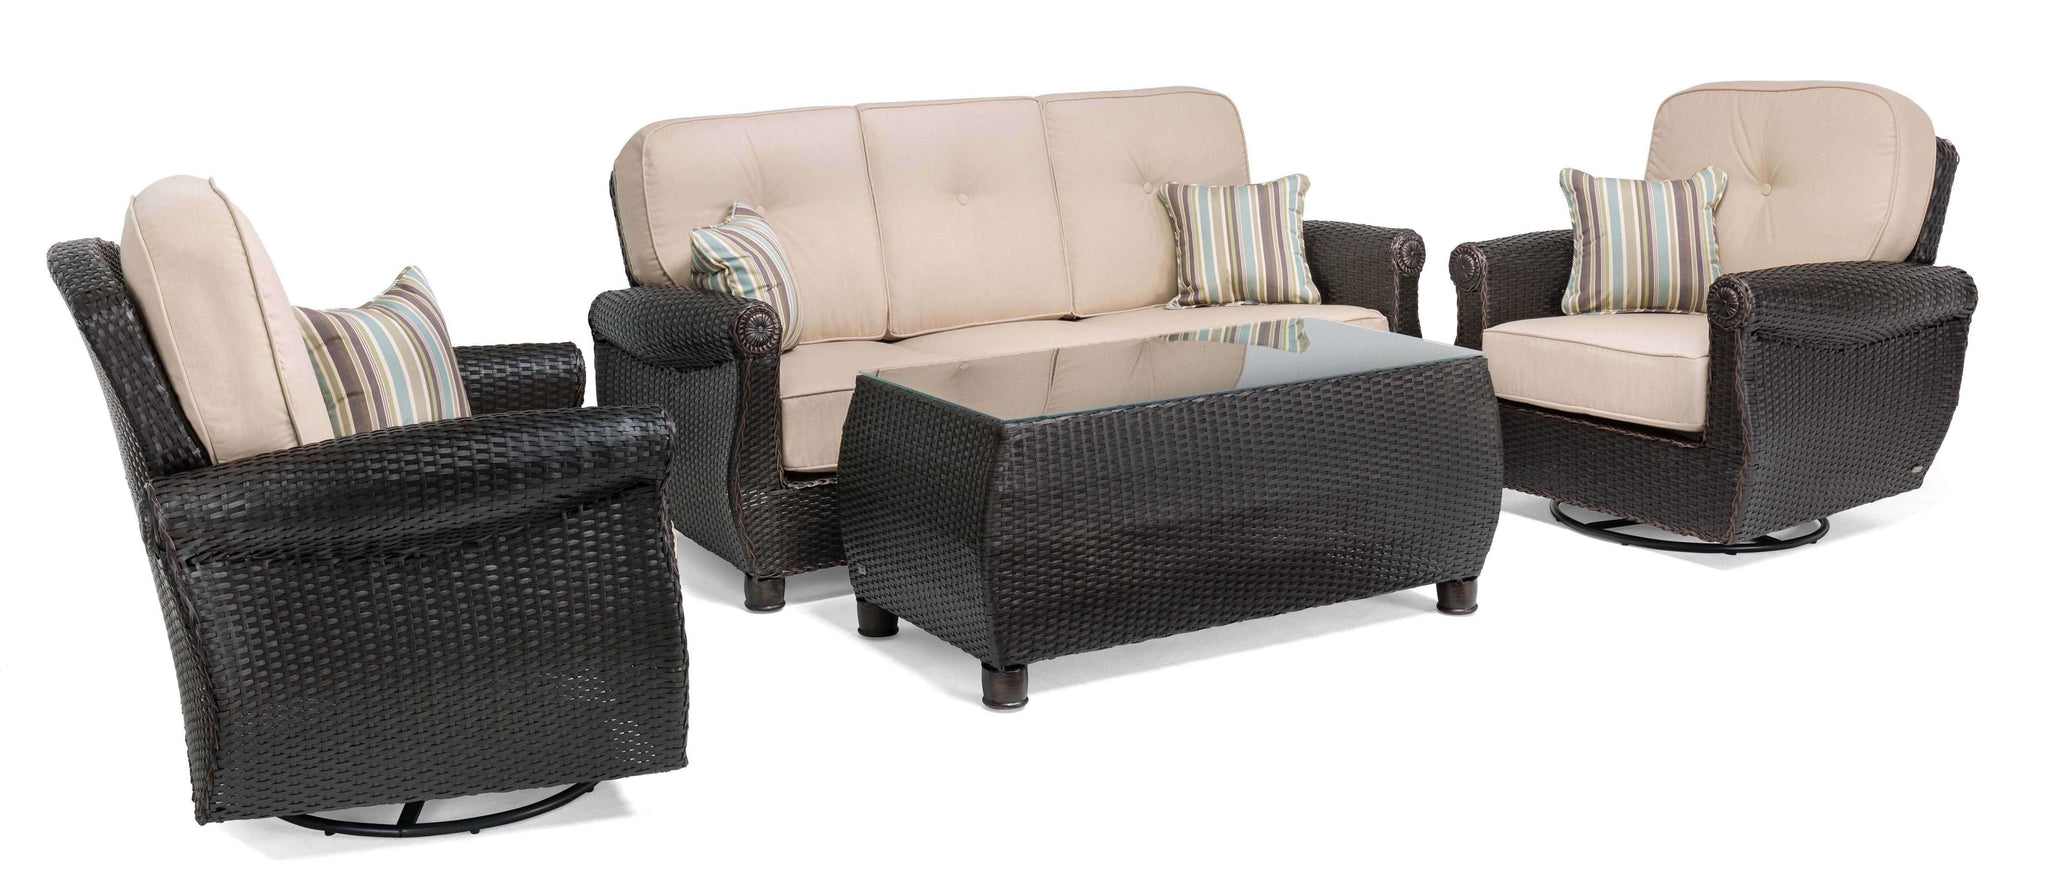 Bon Breckenridge 4 Piece Patio Furniture Set: Two Swivel Rockers, Sofa, And  Coffee Table (Natural Tan)